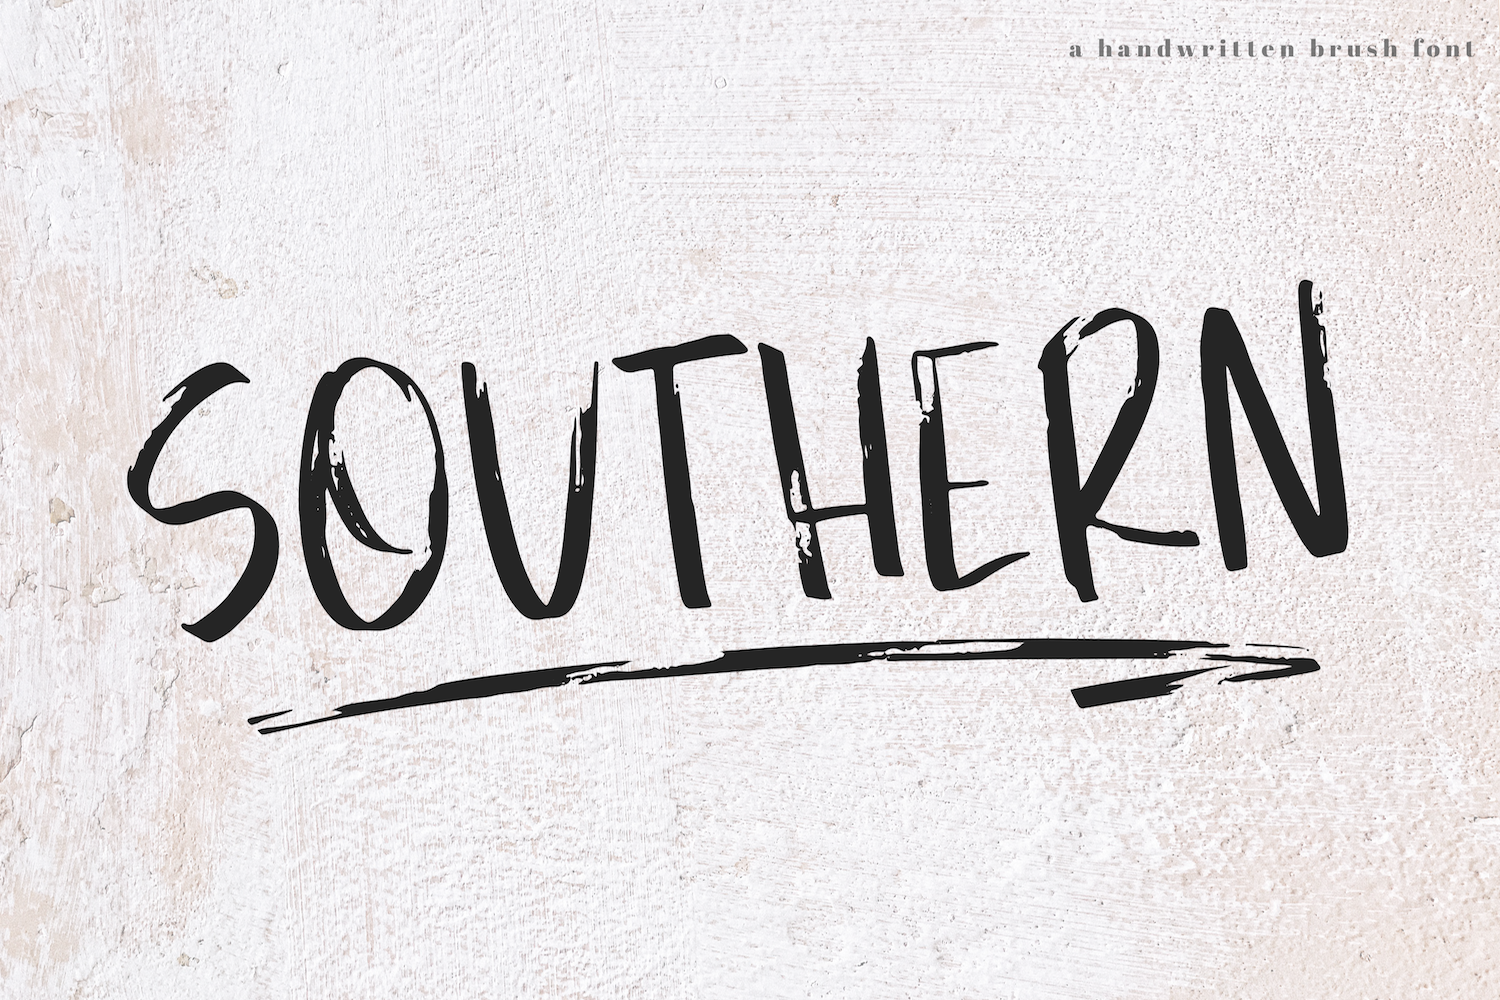 Southern - A Handwritten Brush Font example image 1